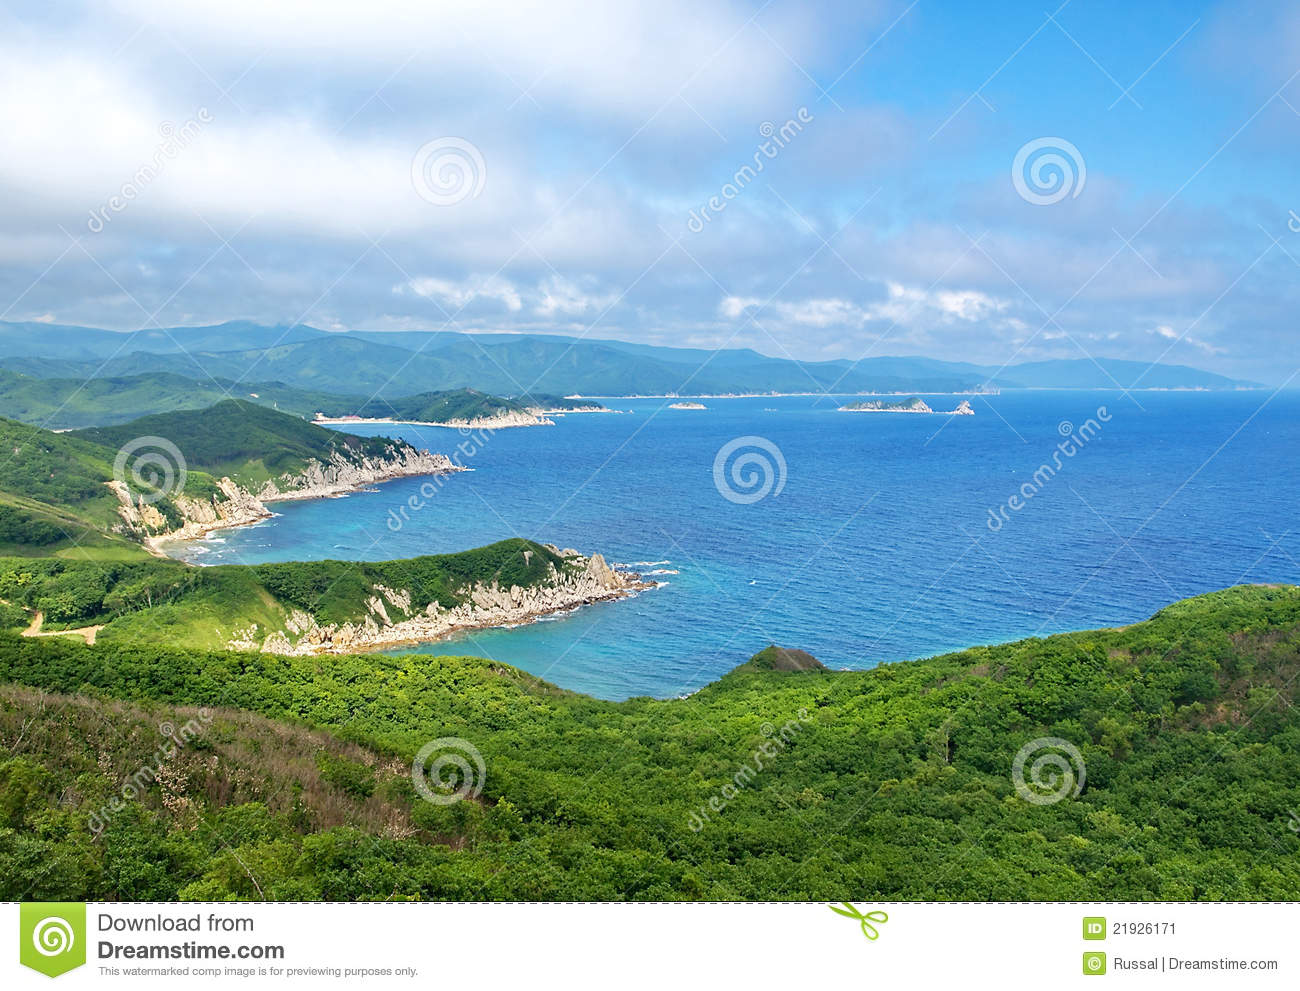 Coast of the Japan sea, Primorsky krai.